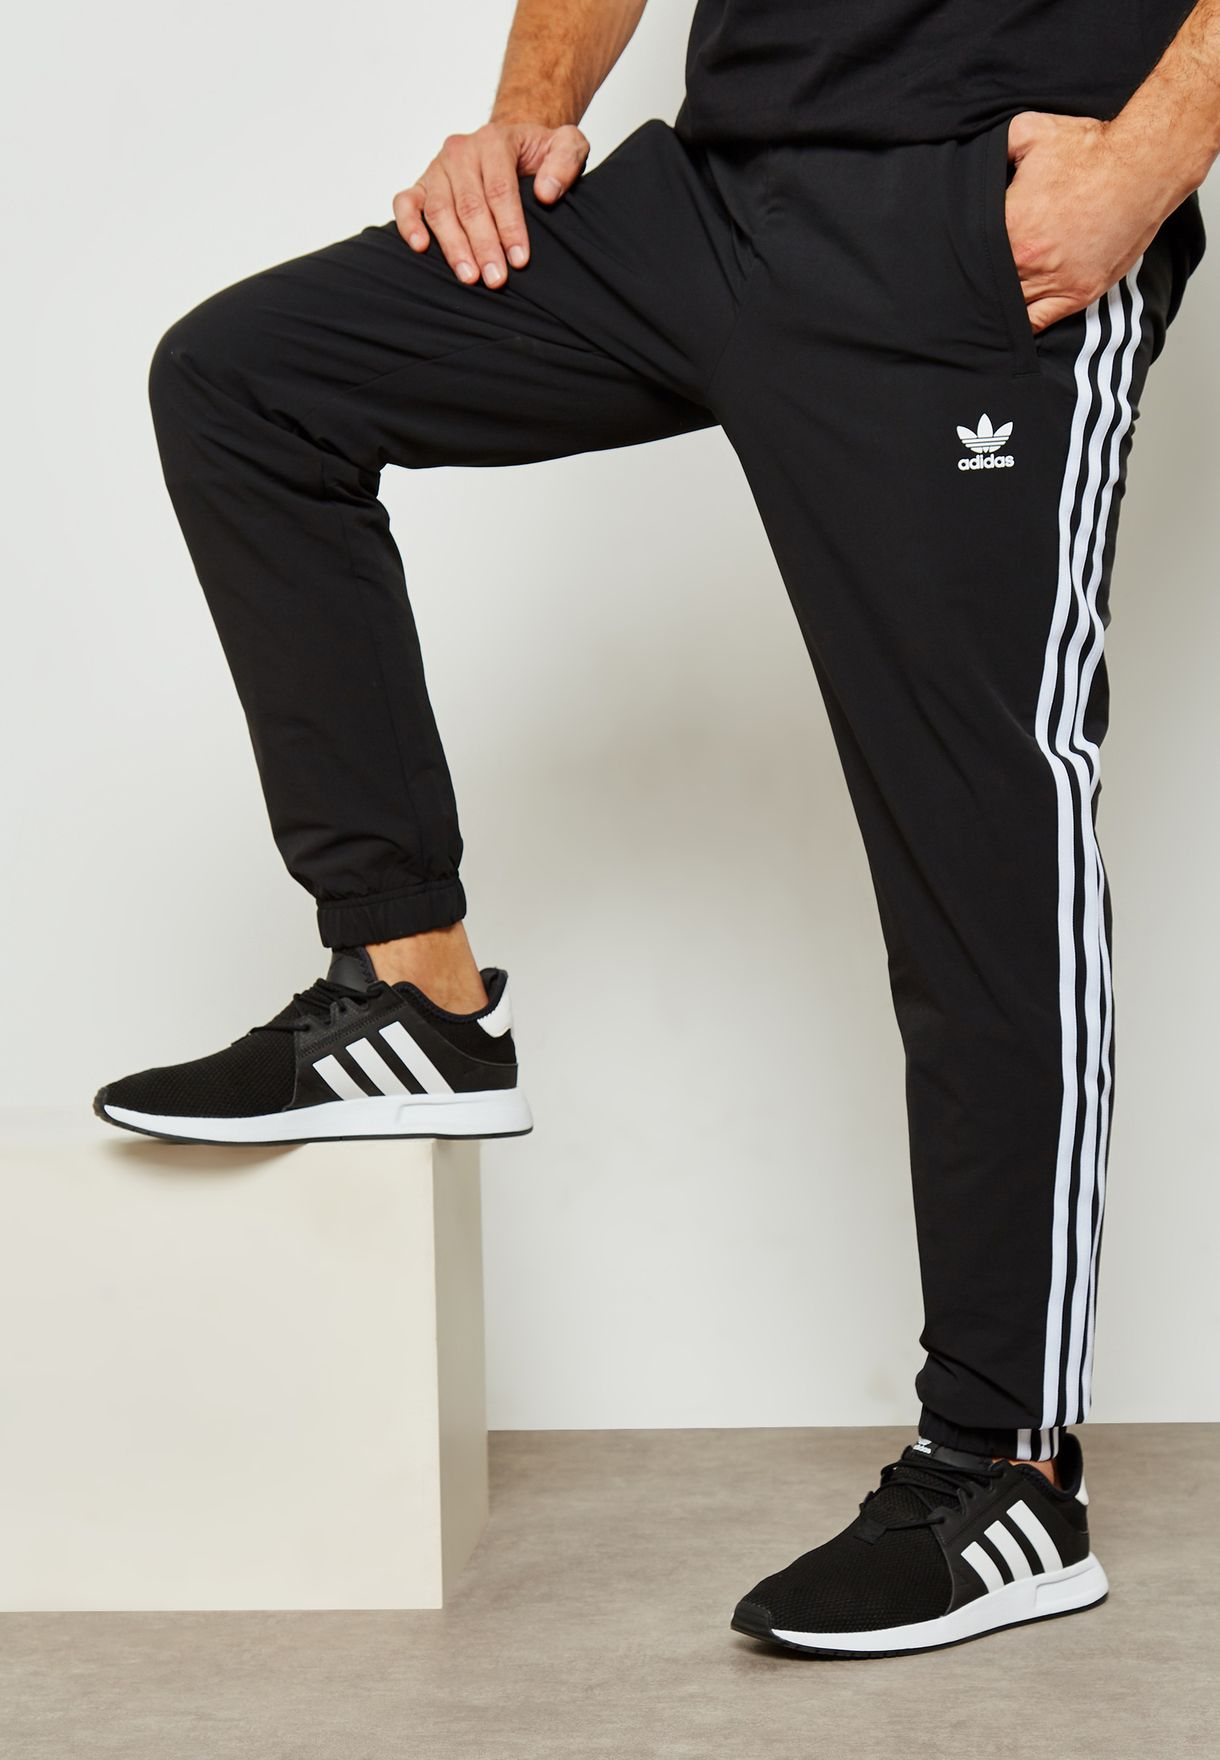 promo code 82535 181a0 Shop adidas Originals black Warm-Up Sweatpants CW1280 for Men in Saudi -  AD478AT26WQN